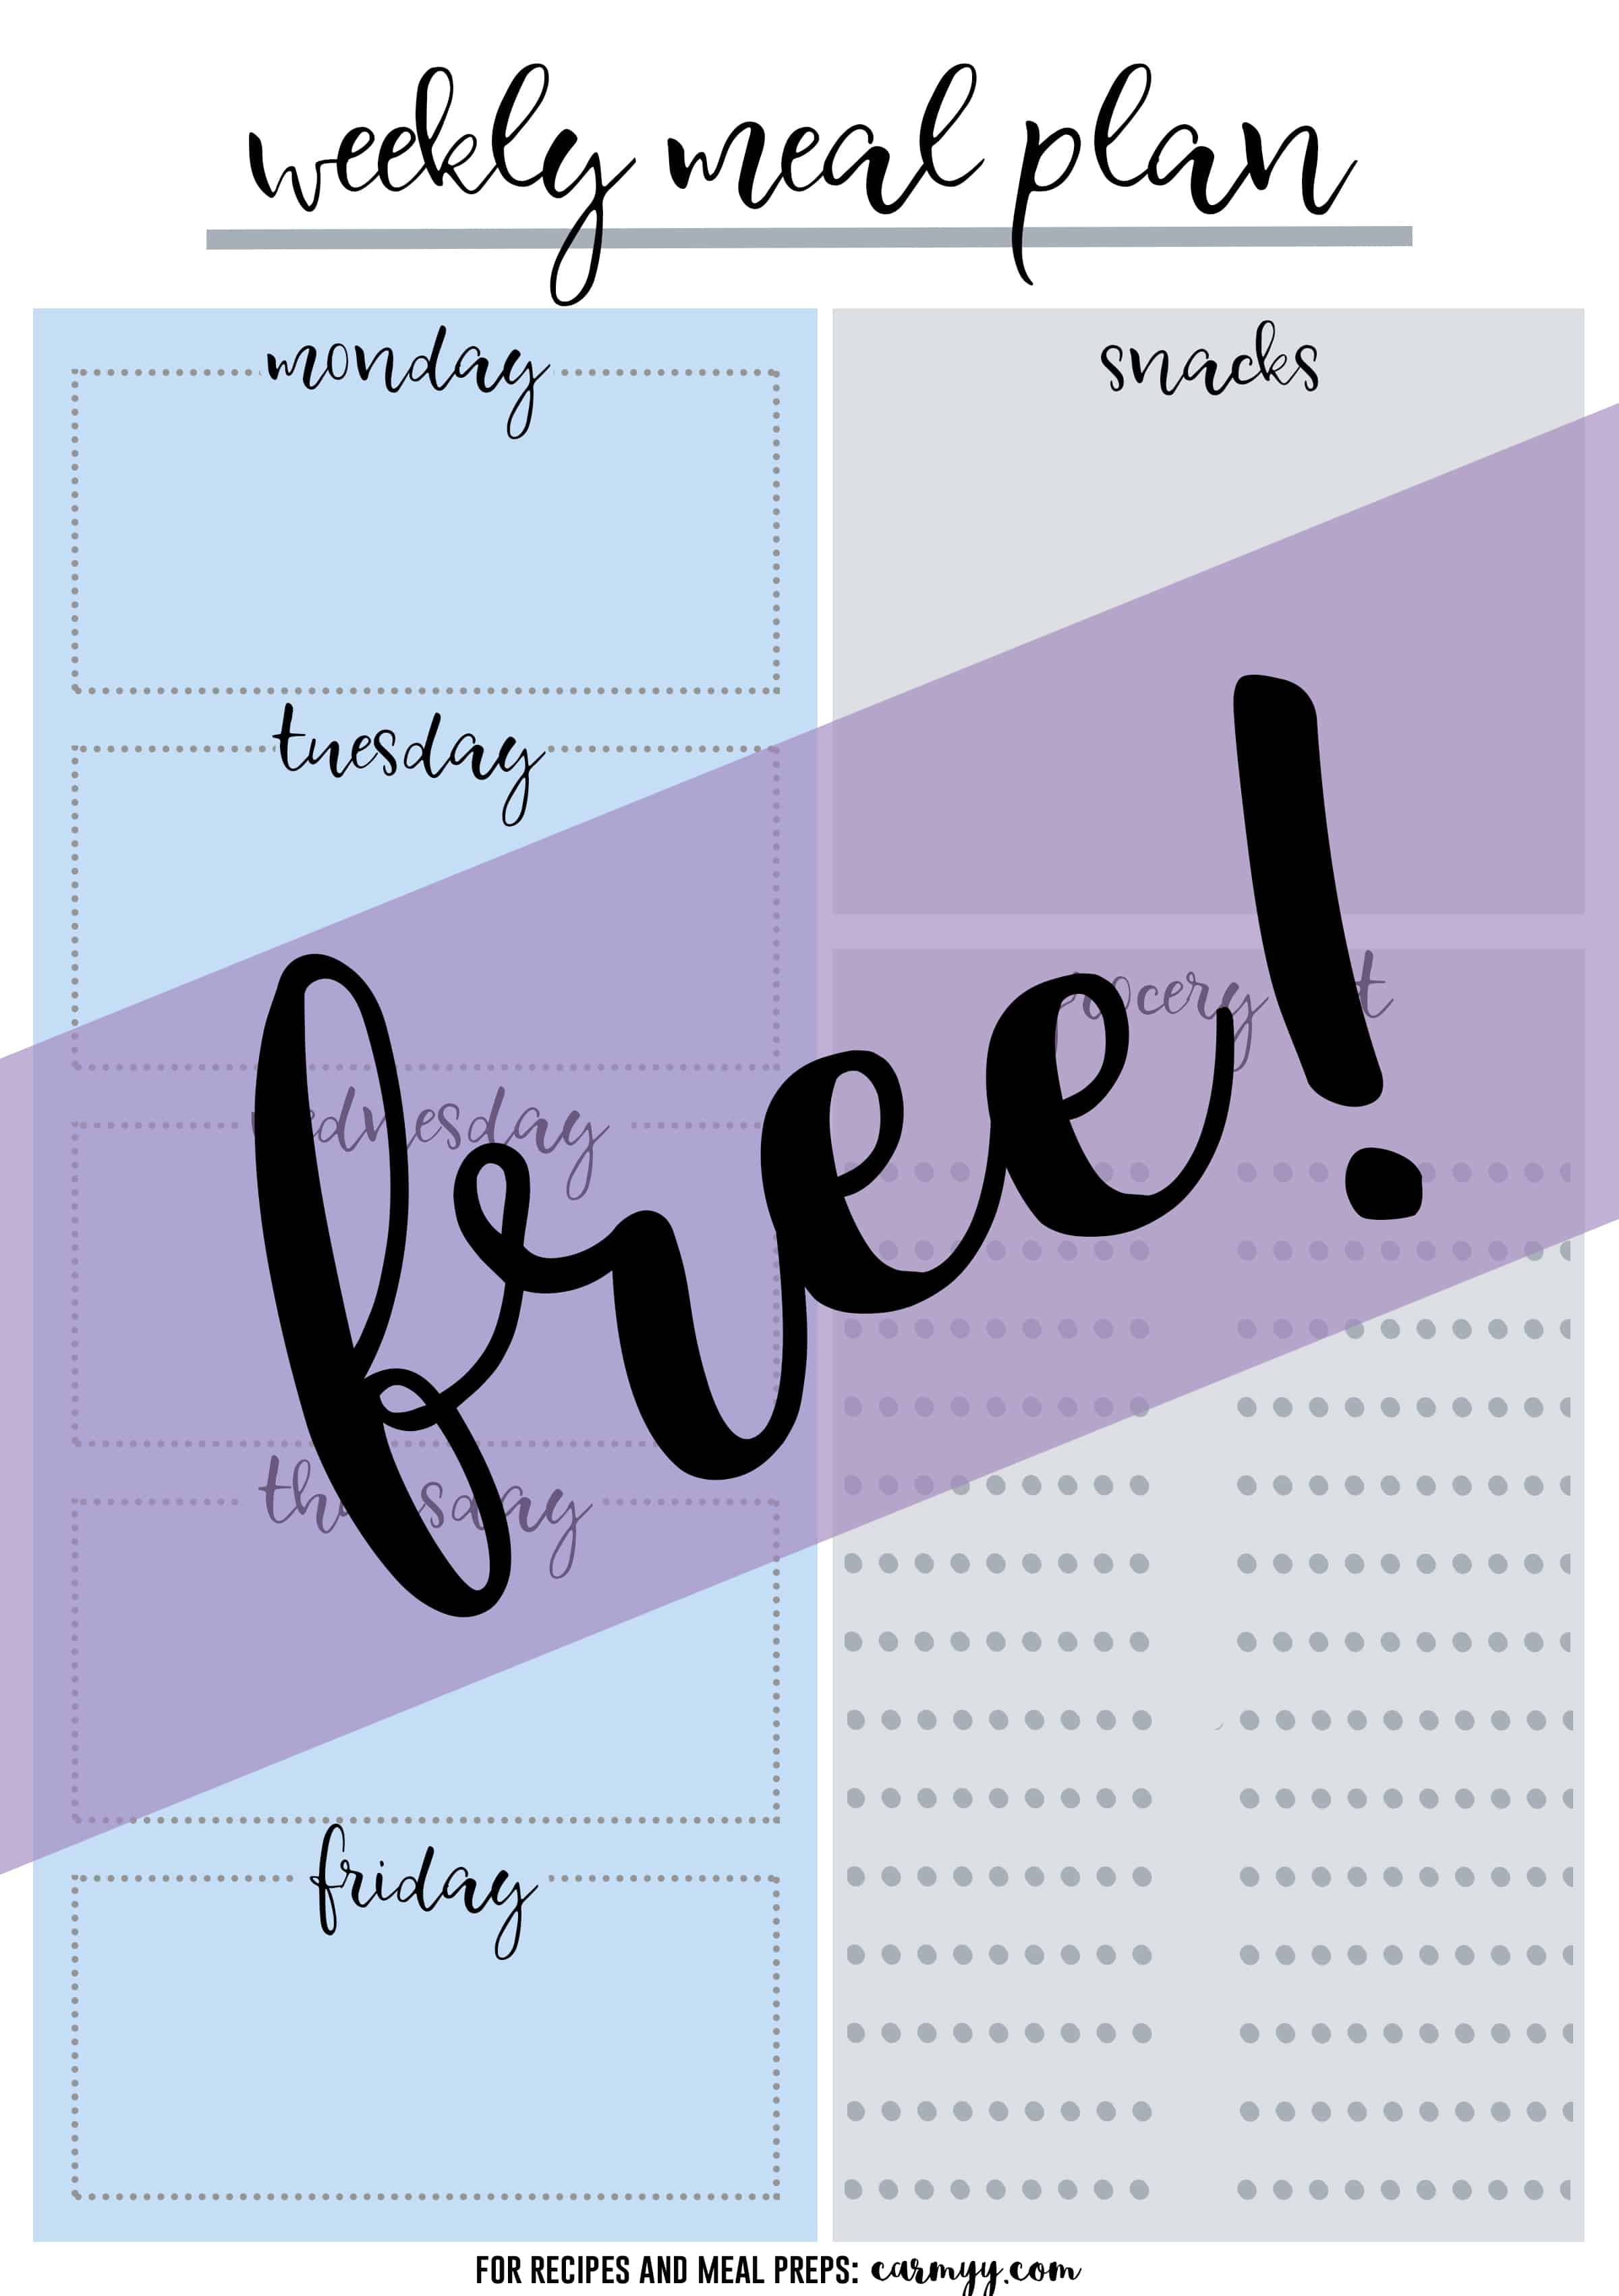 Free Printable Weekly Meal Planner - Printable Recipe & Grocery Planner! Sign up for the mailing list for the printable now!